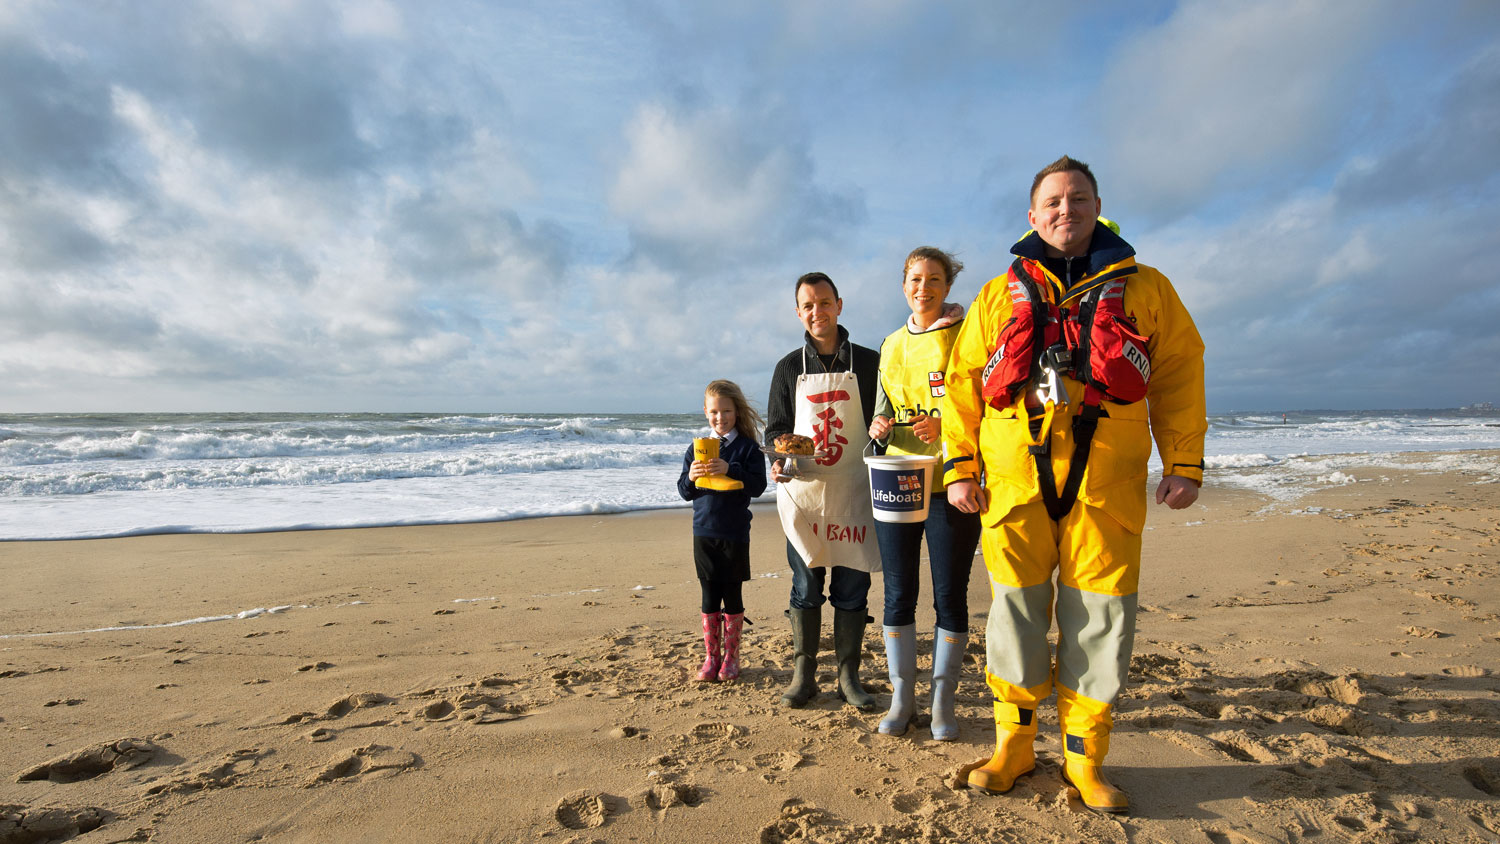 An RNLI crew member standing with three fundraisers on a sandy beach with the sea in the background